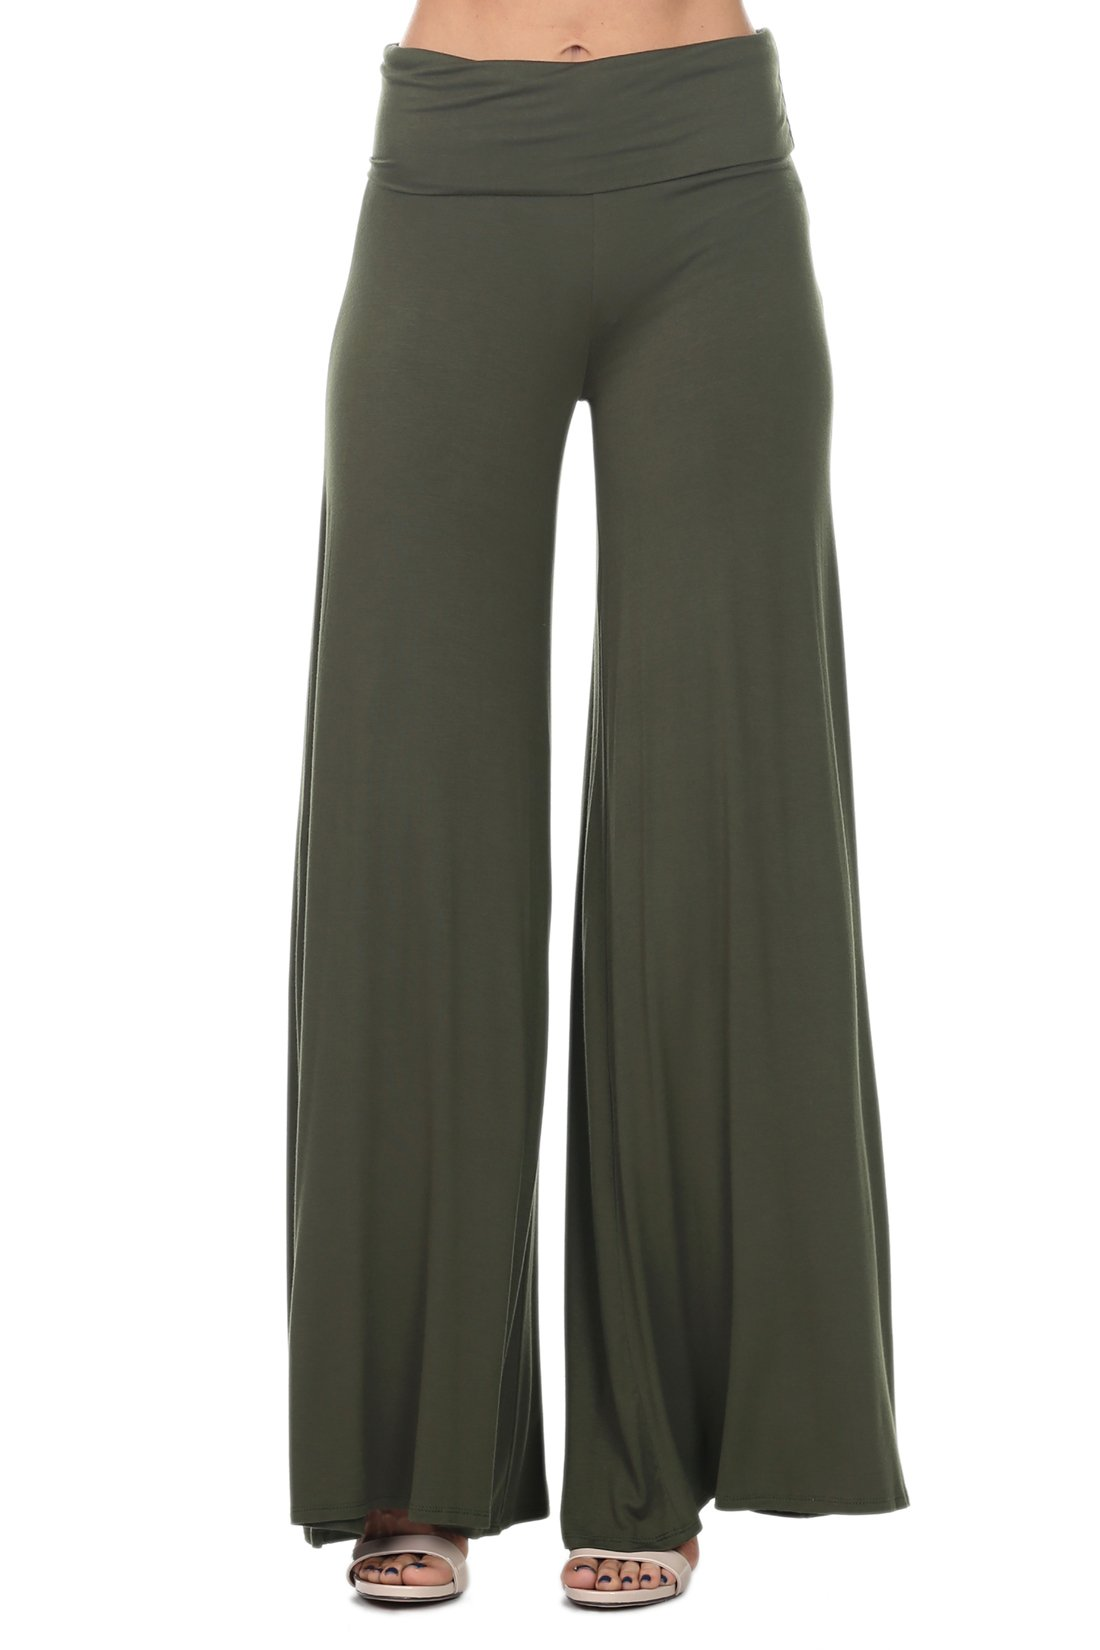 coul J WP502 Women's Comfy Chic Fold Over Waist Flare Wide Leg Palazzo Lounge Pants - Olive Green/Size: X-Large